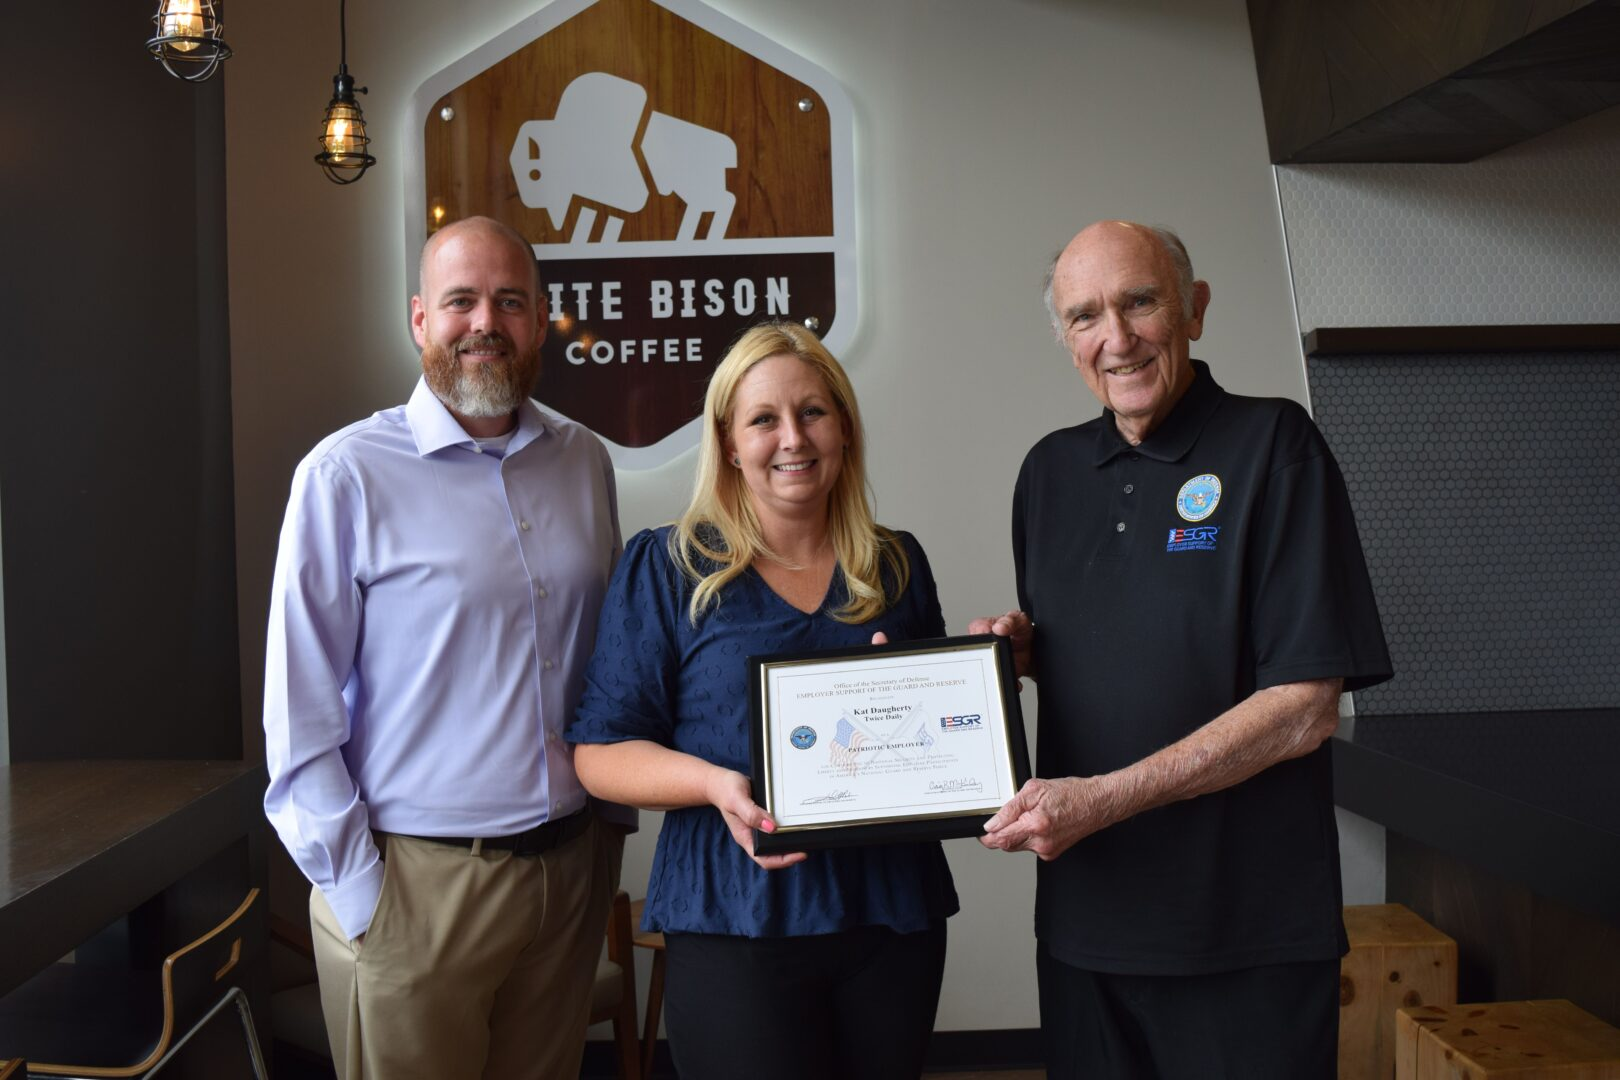 Franklin, TN Community - Local Employee Honored with Patriotic Award